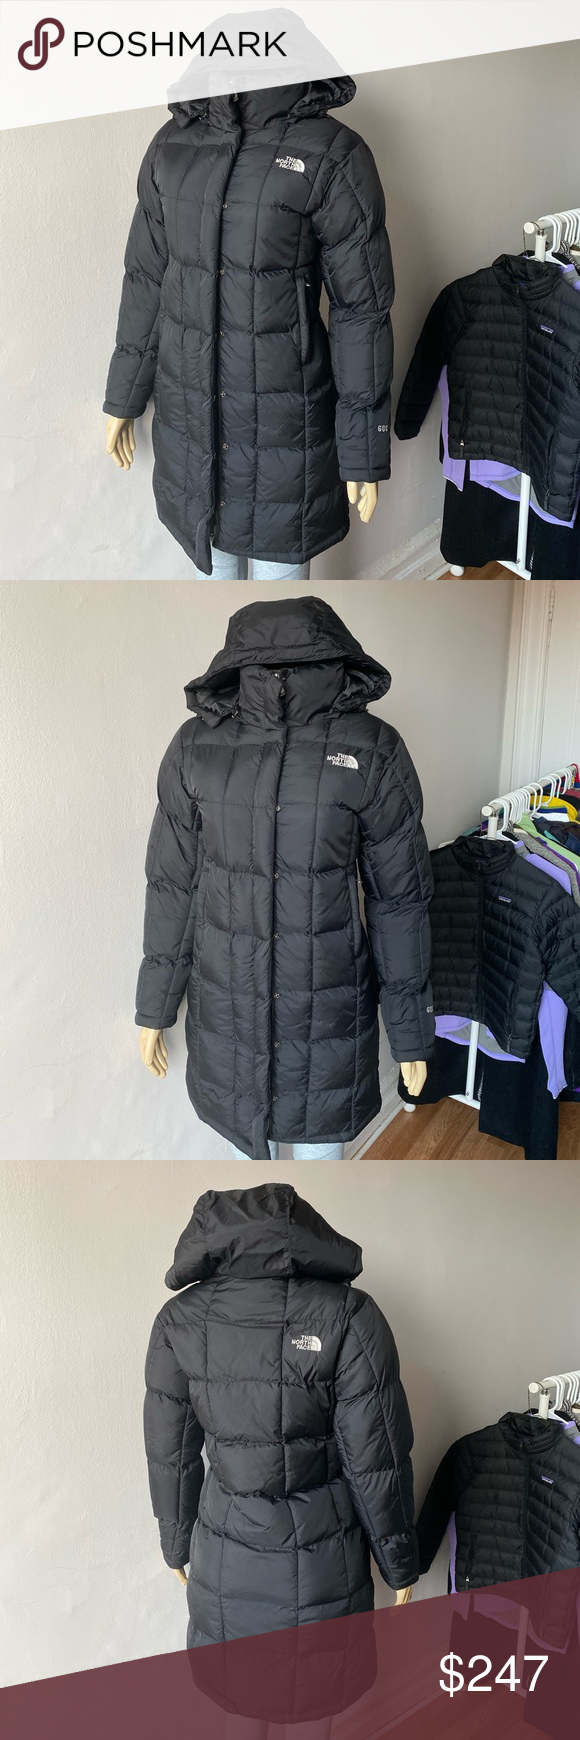 The North Face 600 Long Goose Down Jacket Black Down Jacket Black North Face North Face Jacket [ 1740 x 580 Pixel ]